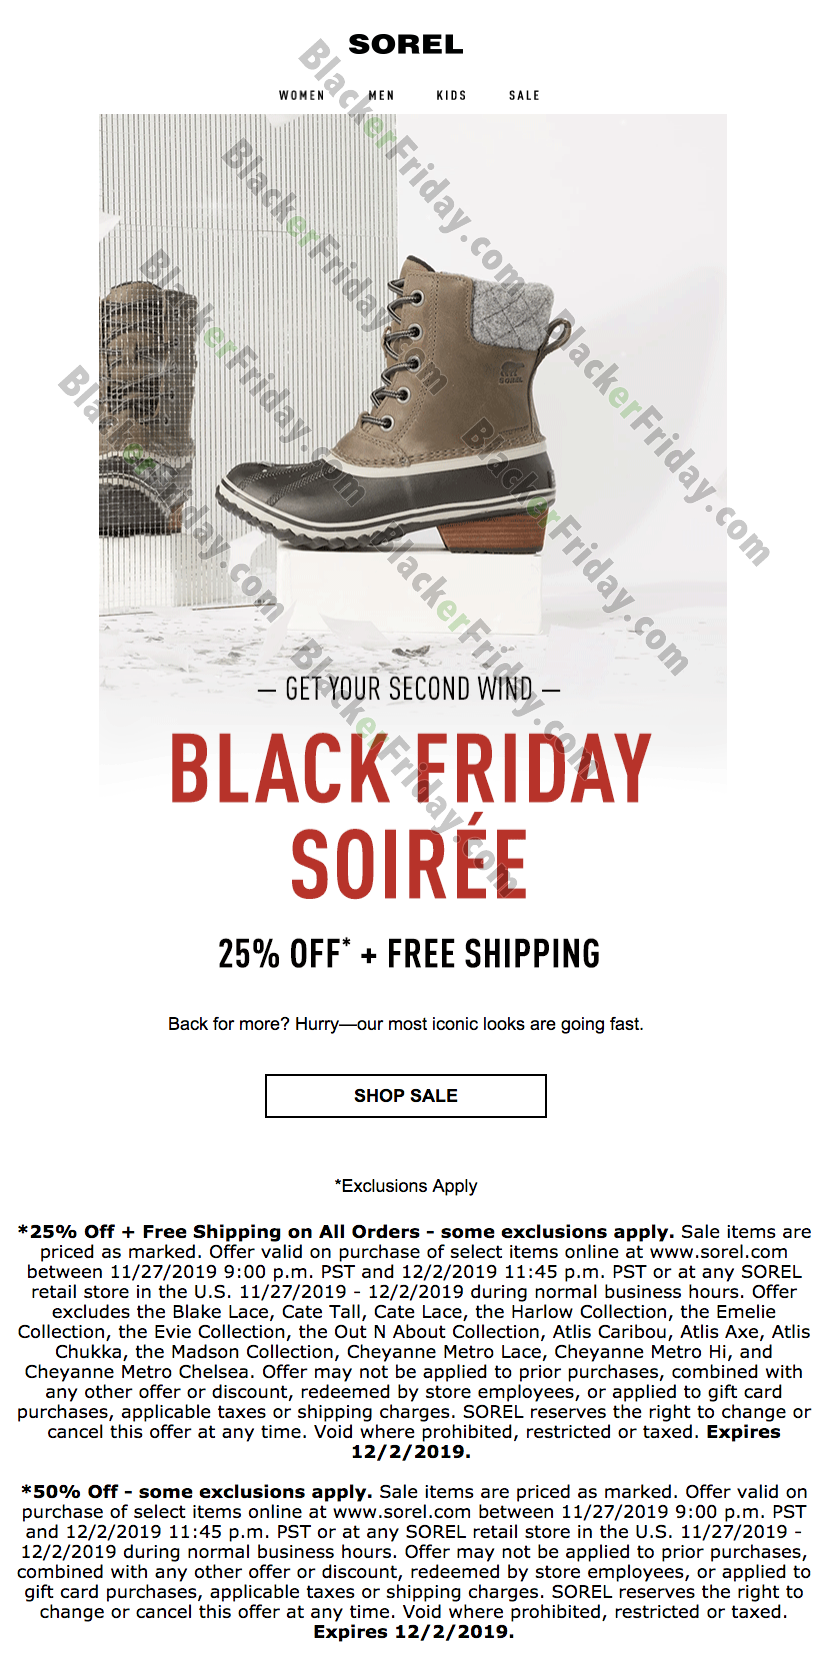 Sorel Cyber Monday 2020 Sale - What to